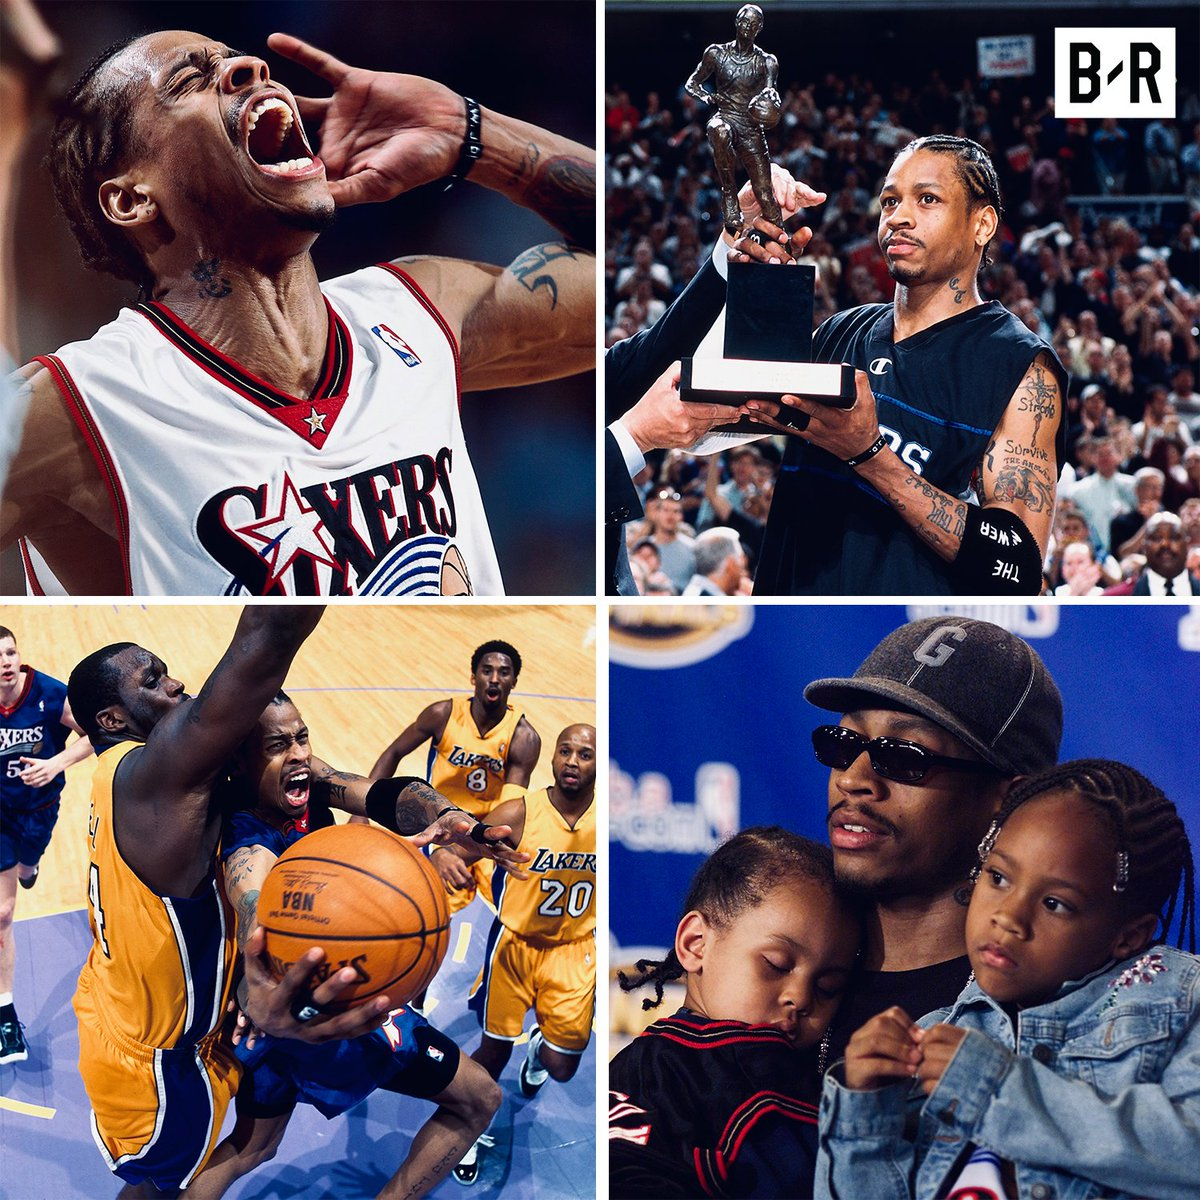 "18 years ago today, Allen Iverson was named MVP of the league  ■ First player since '92-93 Jordan to lead league in PPG (31.1) and SPG (2.5) ■ With 93/124 first-place votes, AI beat out Duncan and Shaq ■ At 6'0"" and 165 pounds, he's the shortest and lightest player to ever win"